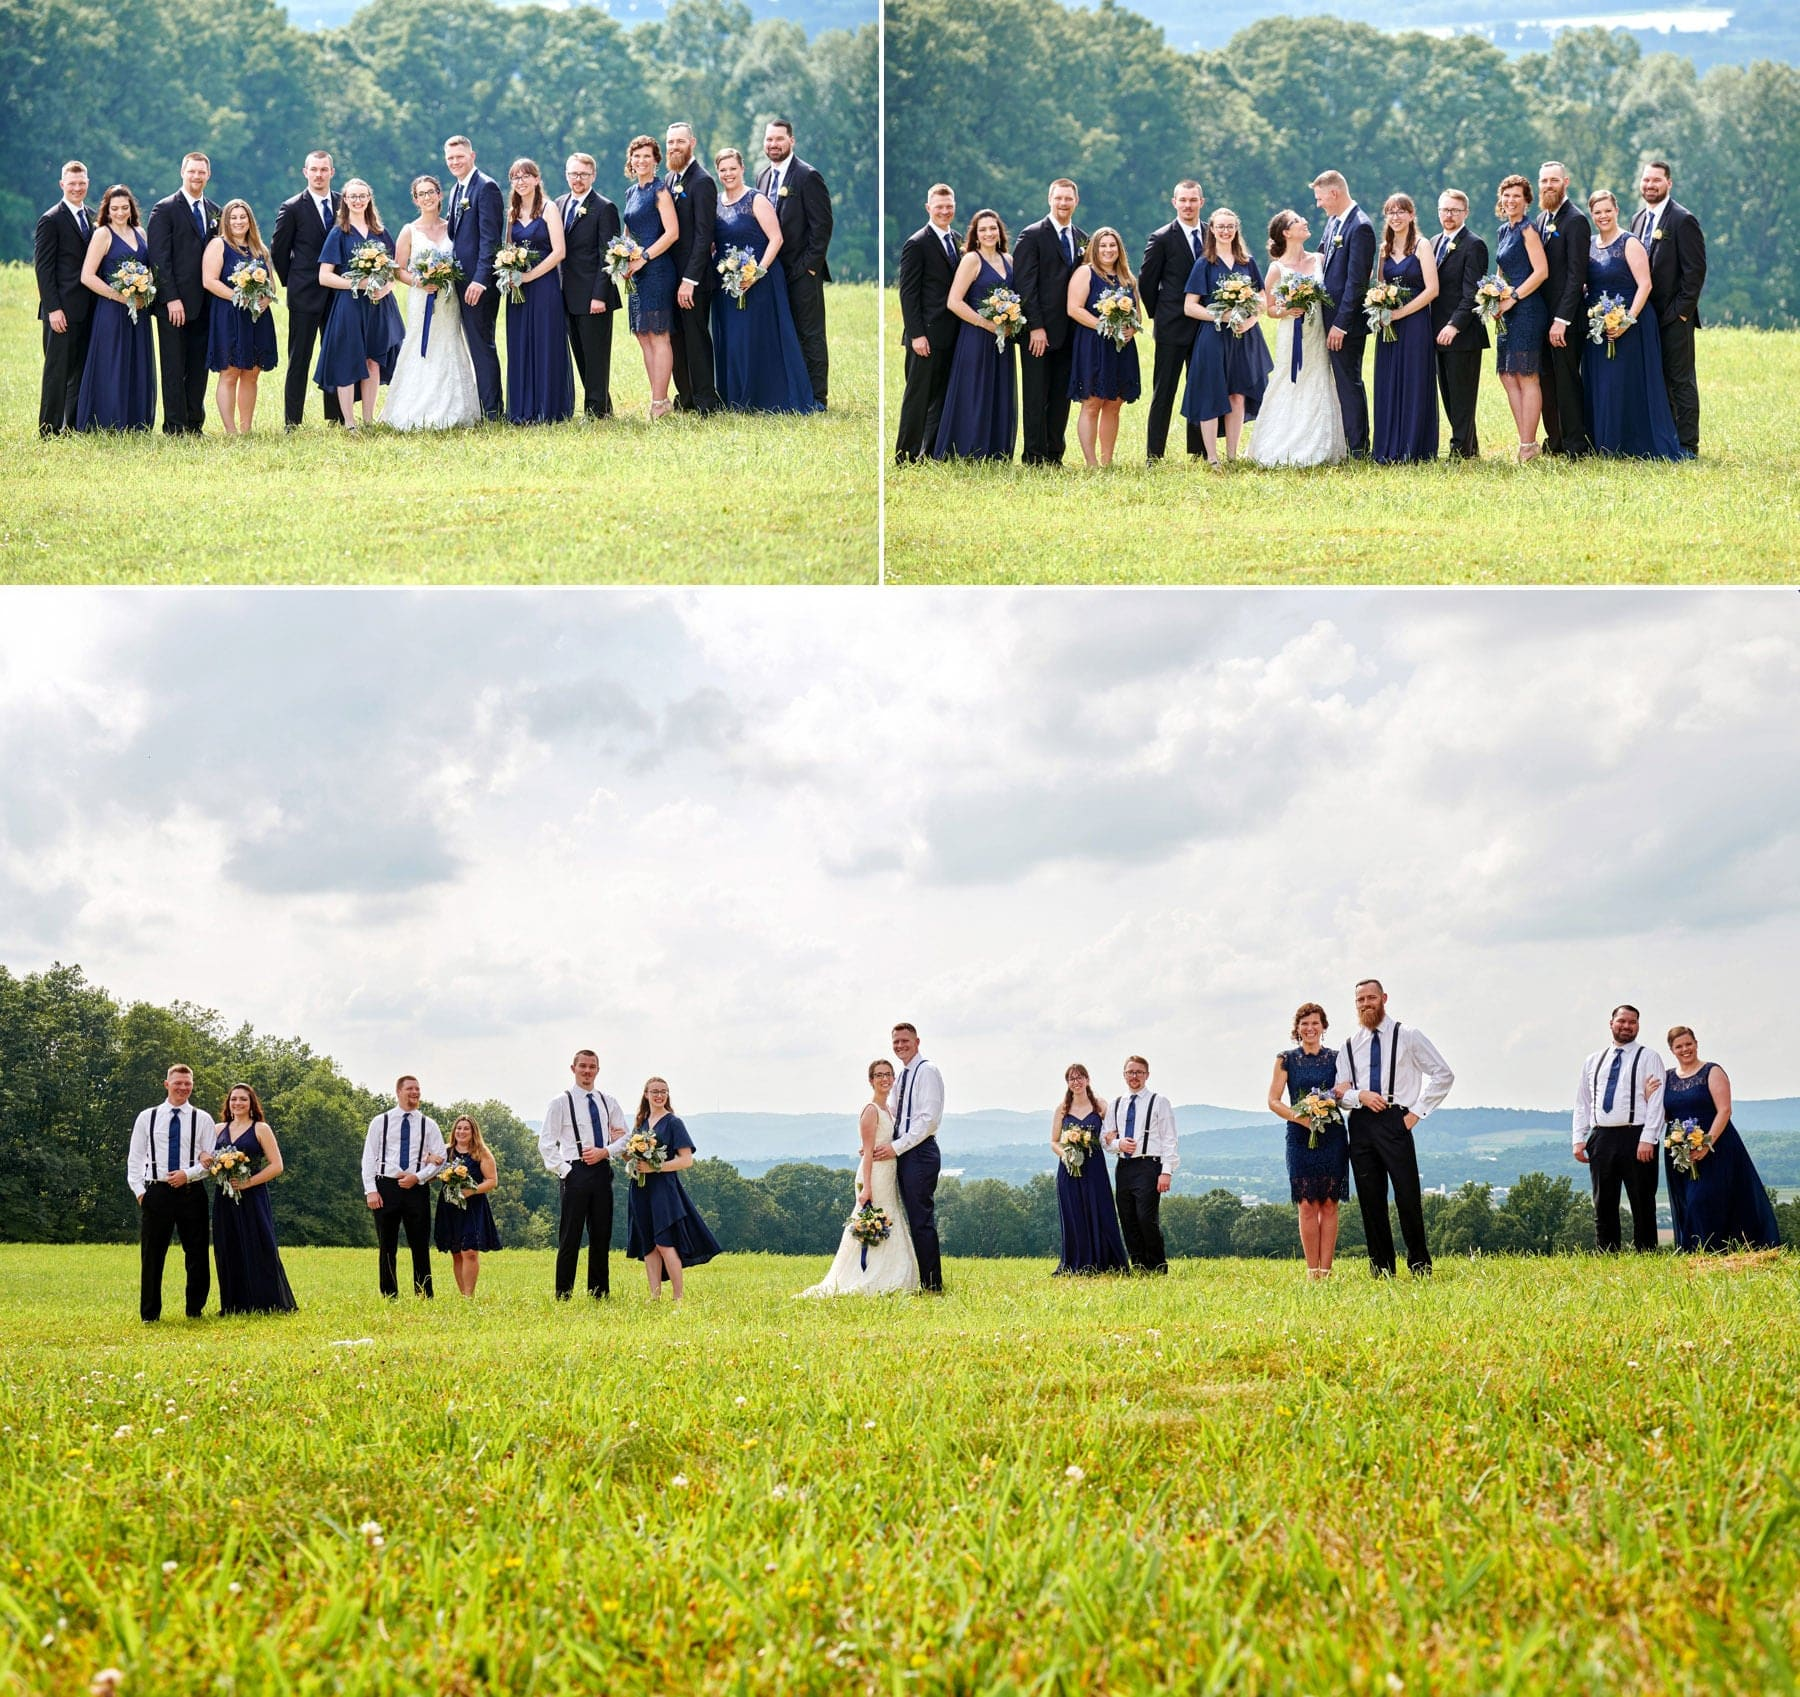 bridal party photos at born to run farm